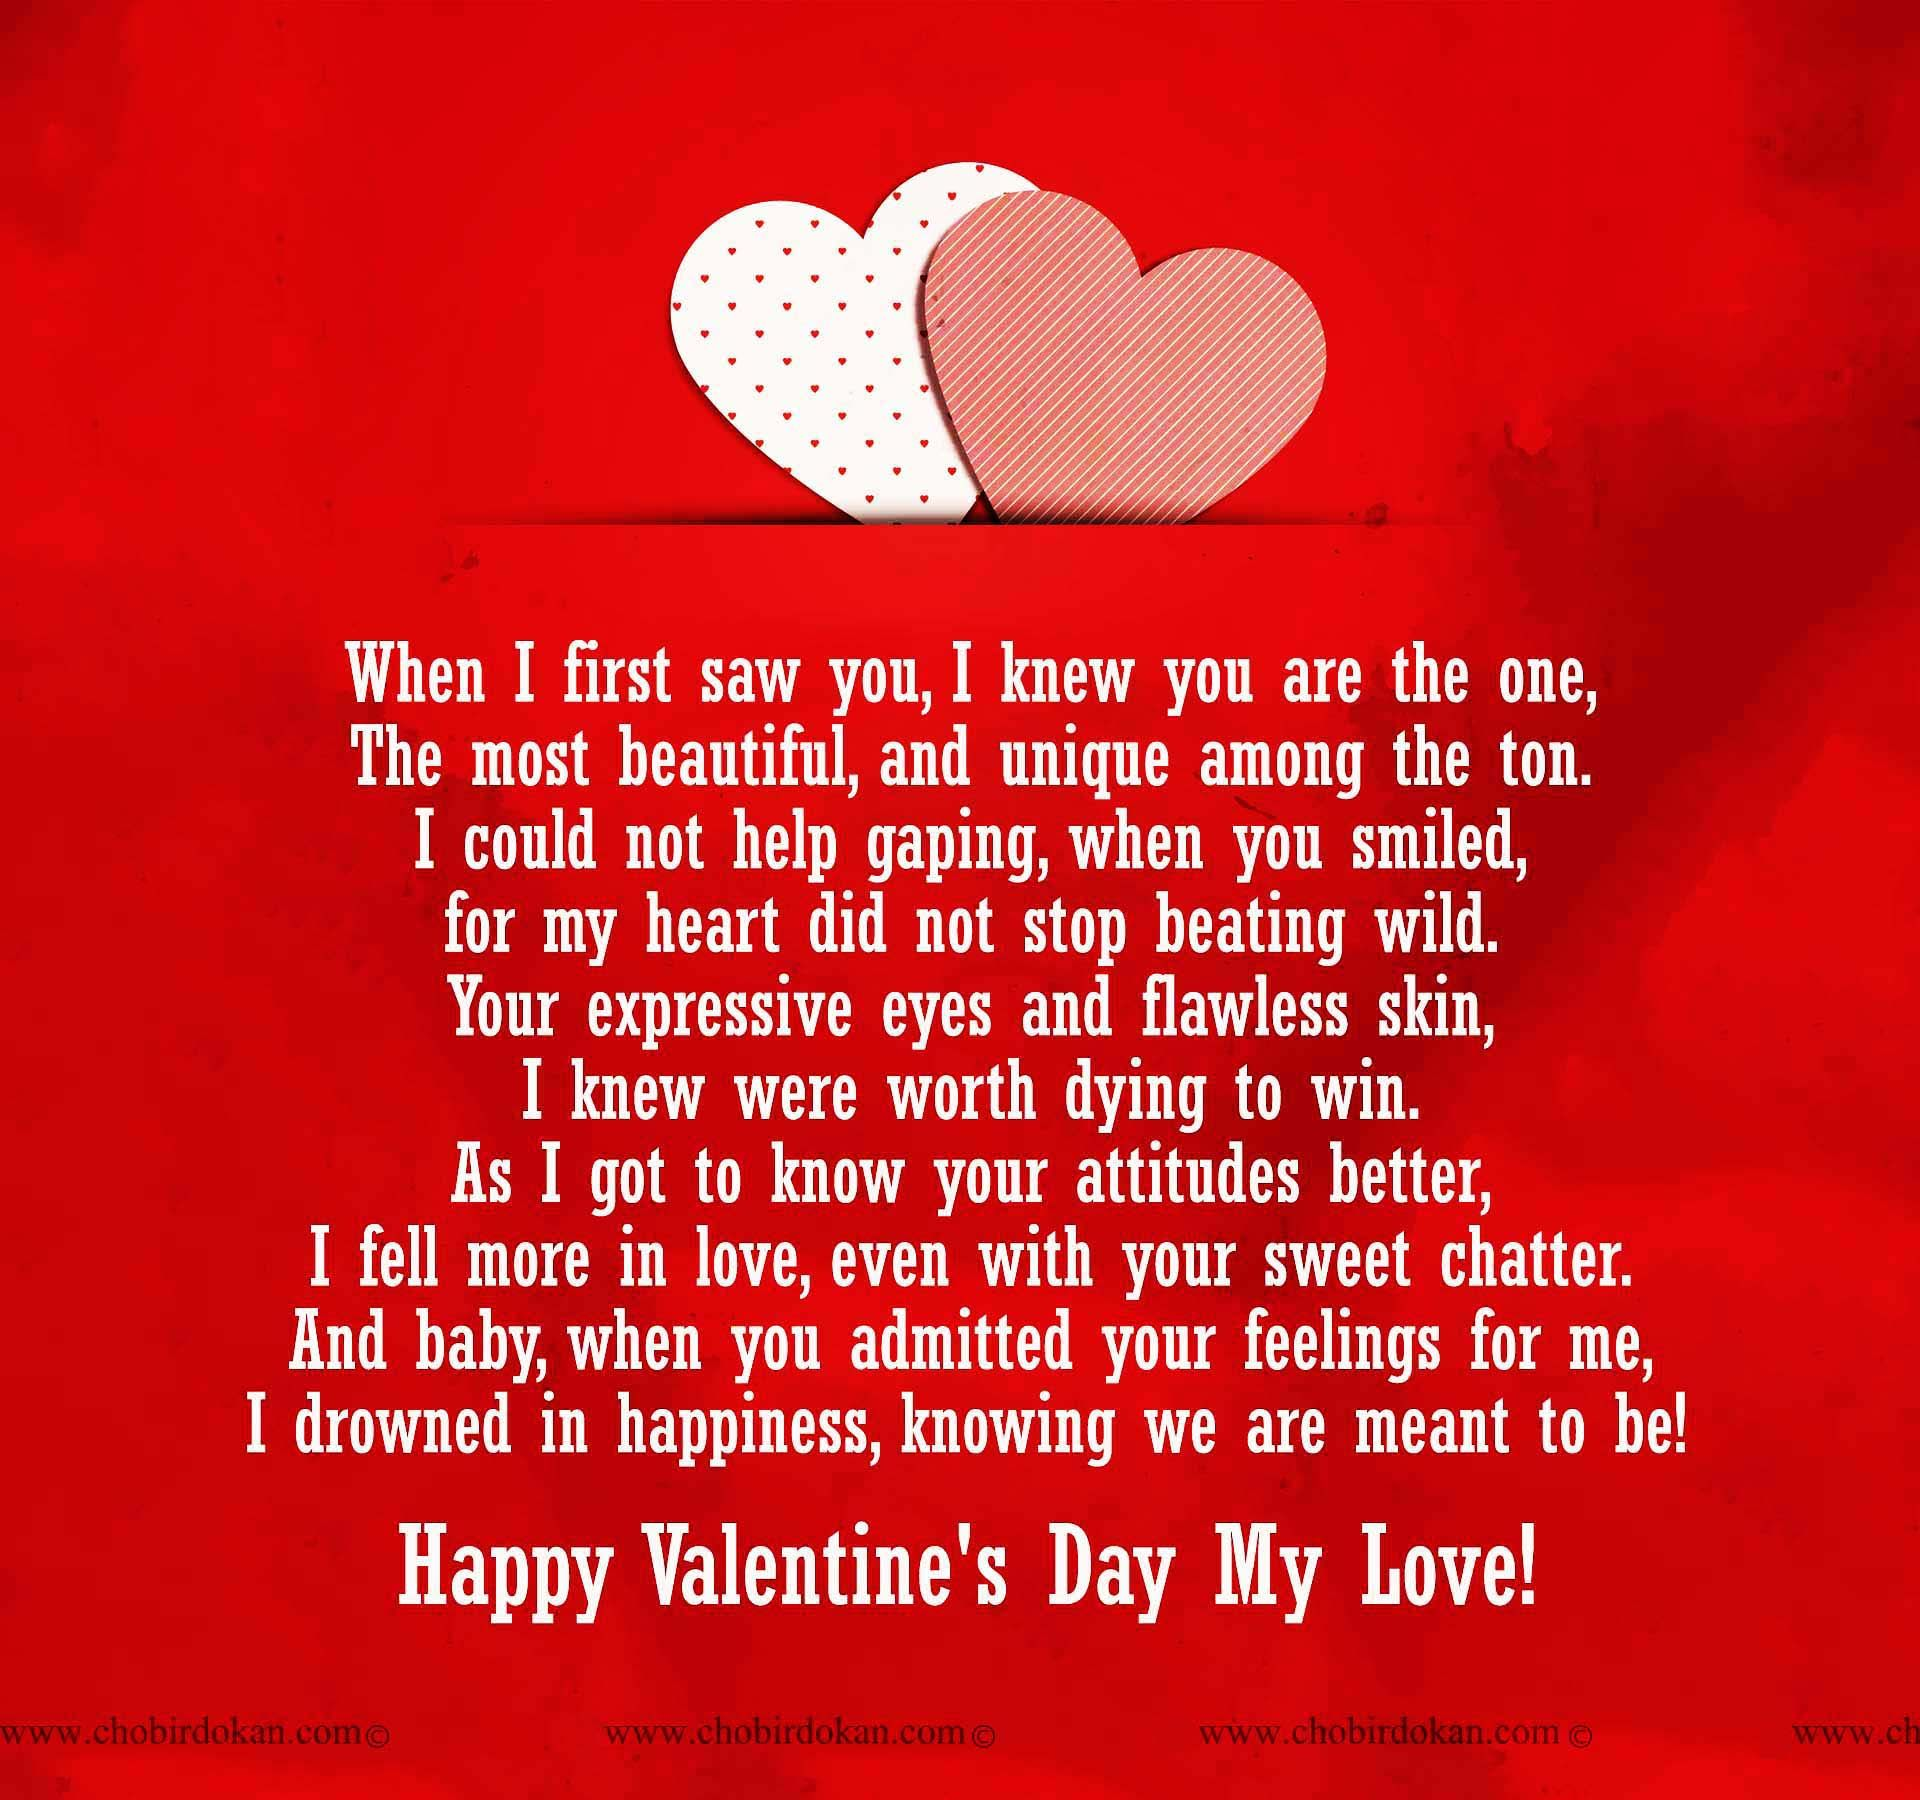 Happy Valentines Day Wife Quotes: Pin By Aeshini Gurusinghe On Awesome